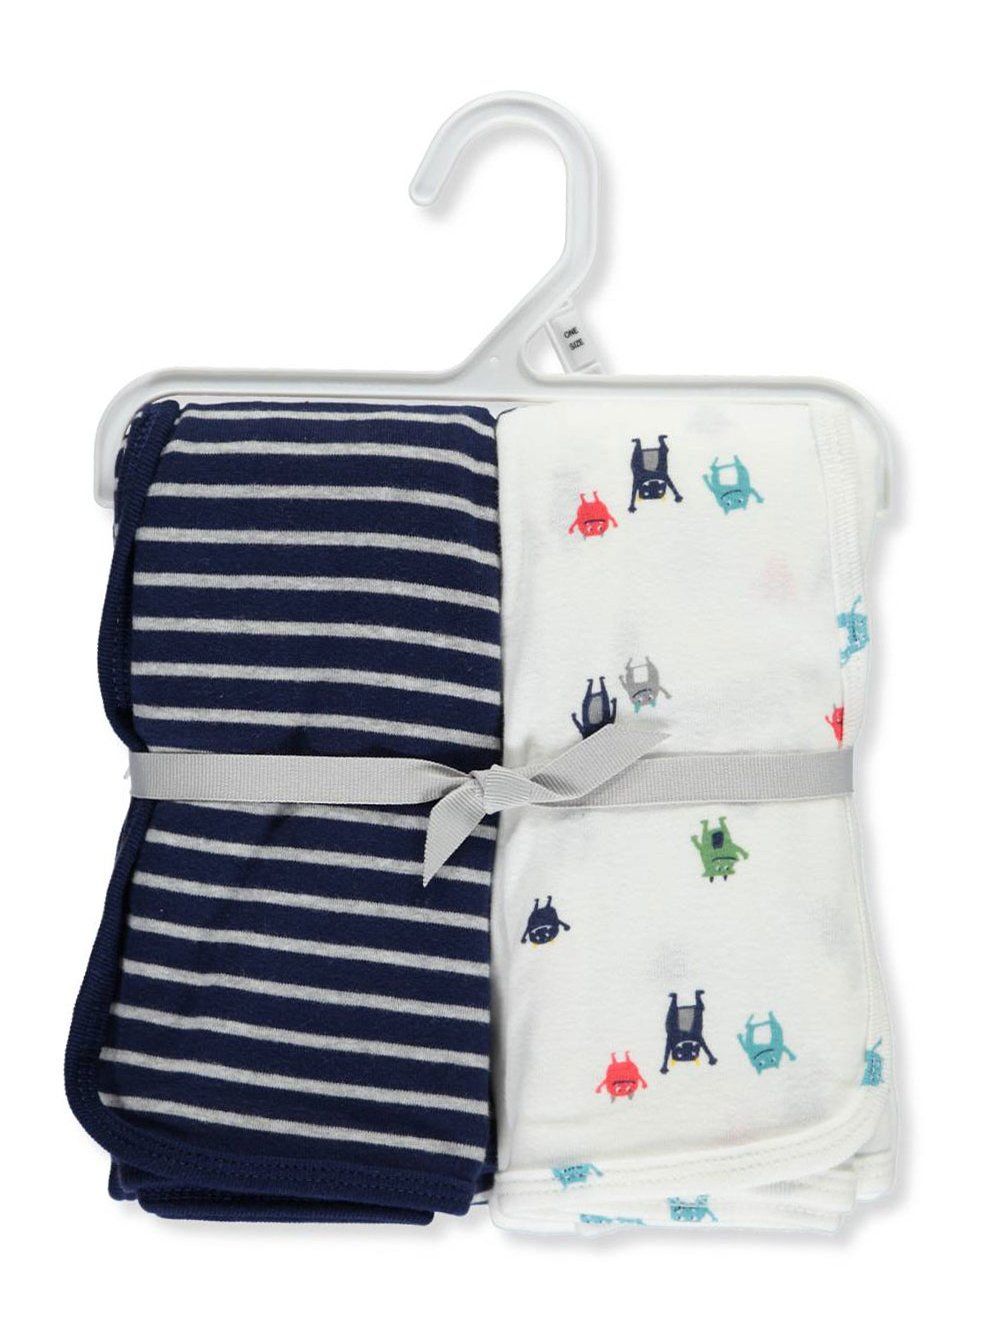 Carter's 2-Pack Swaddle Blankets - navy, one size Carter's 126G889